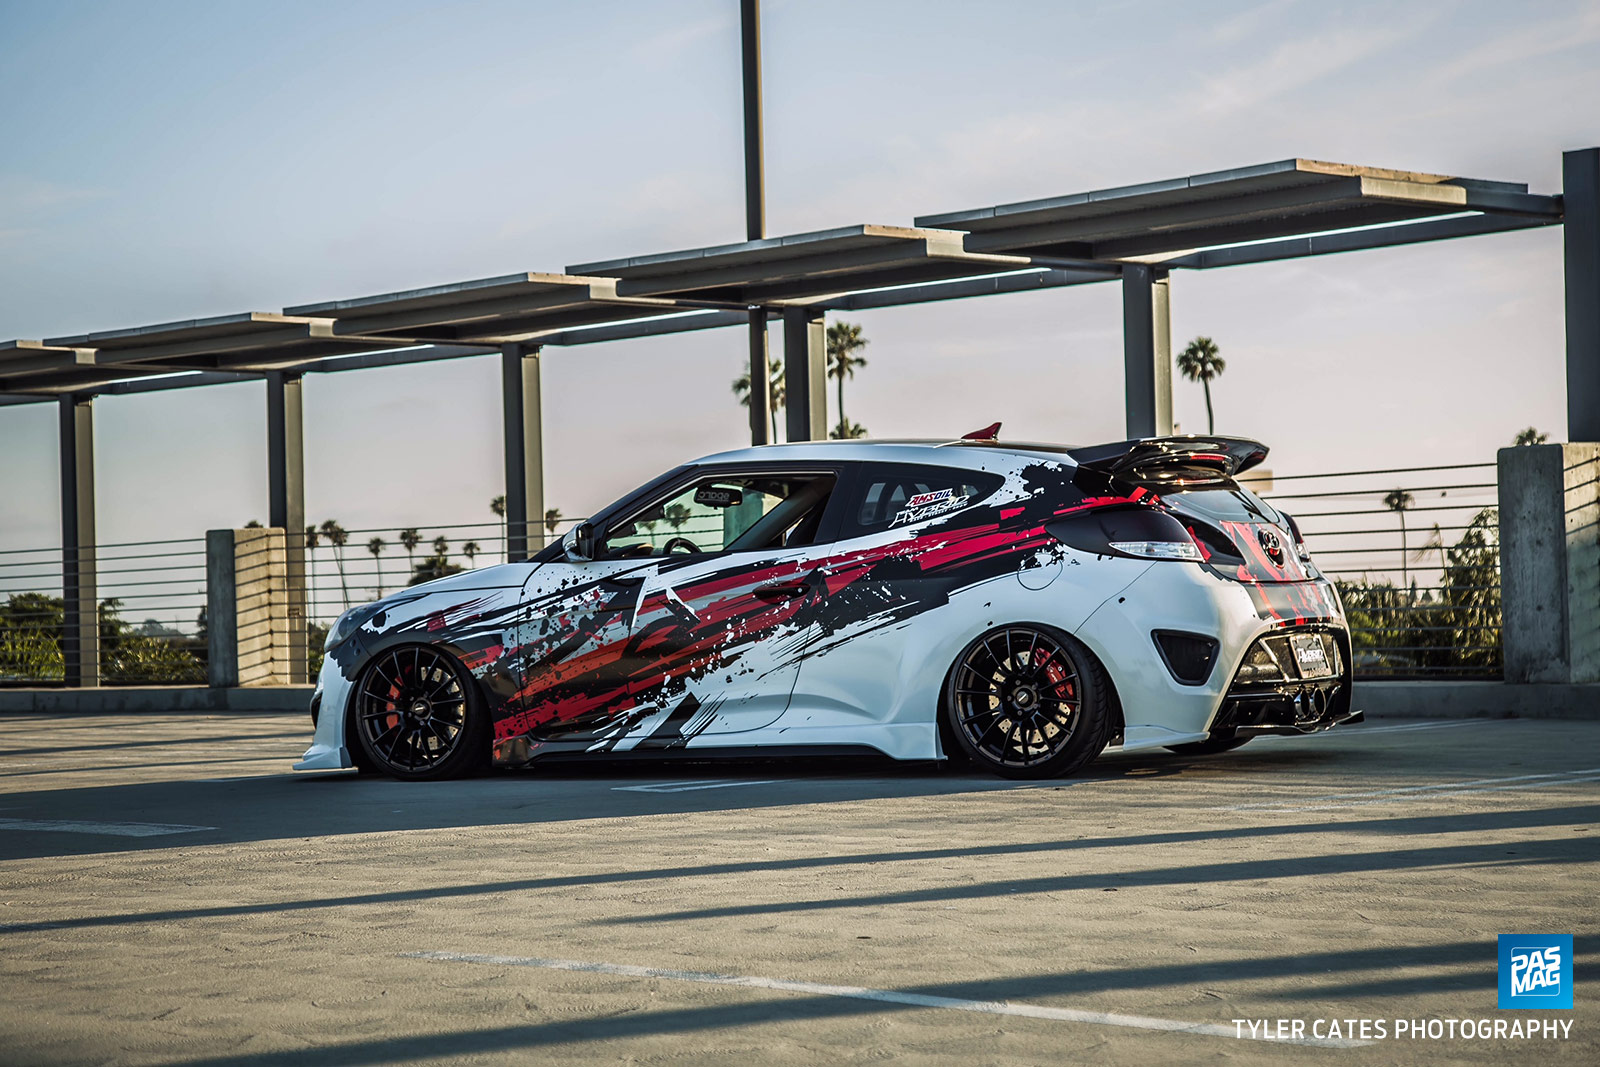 03 Greg Bauchat SoCal Garage Works 2013 Hyundai Veloster Turbo PASMAG